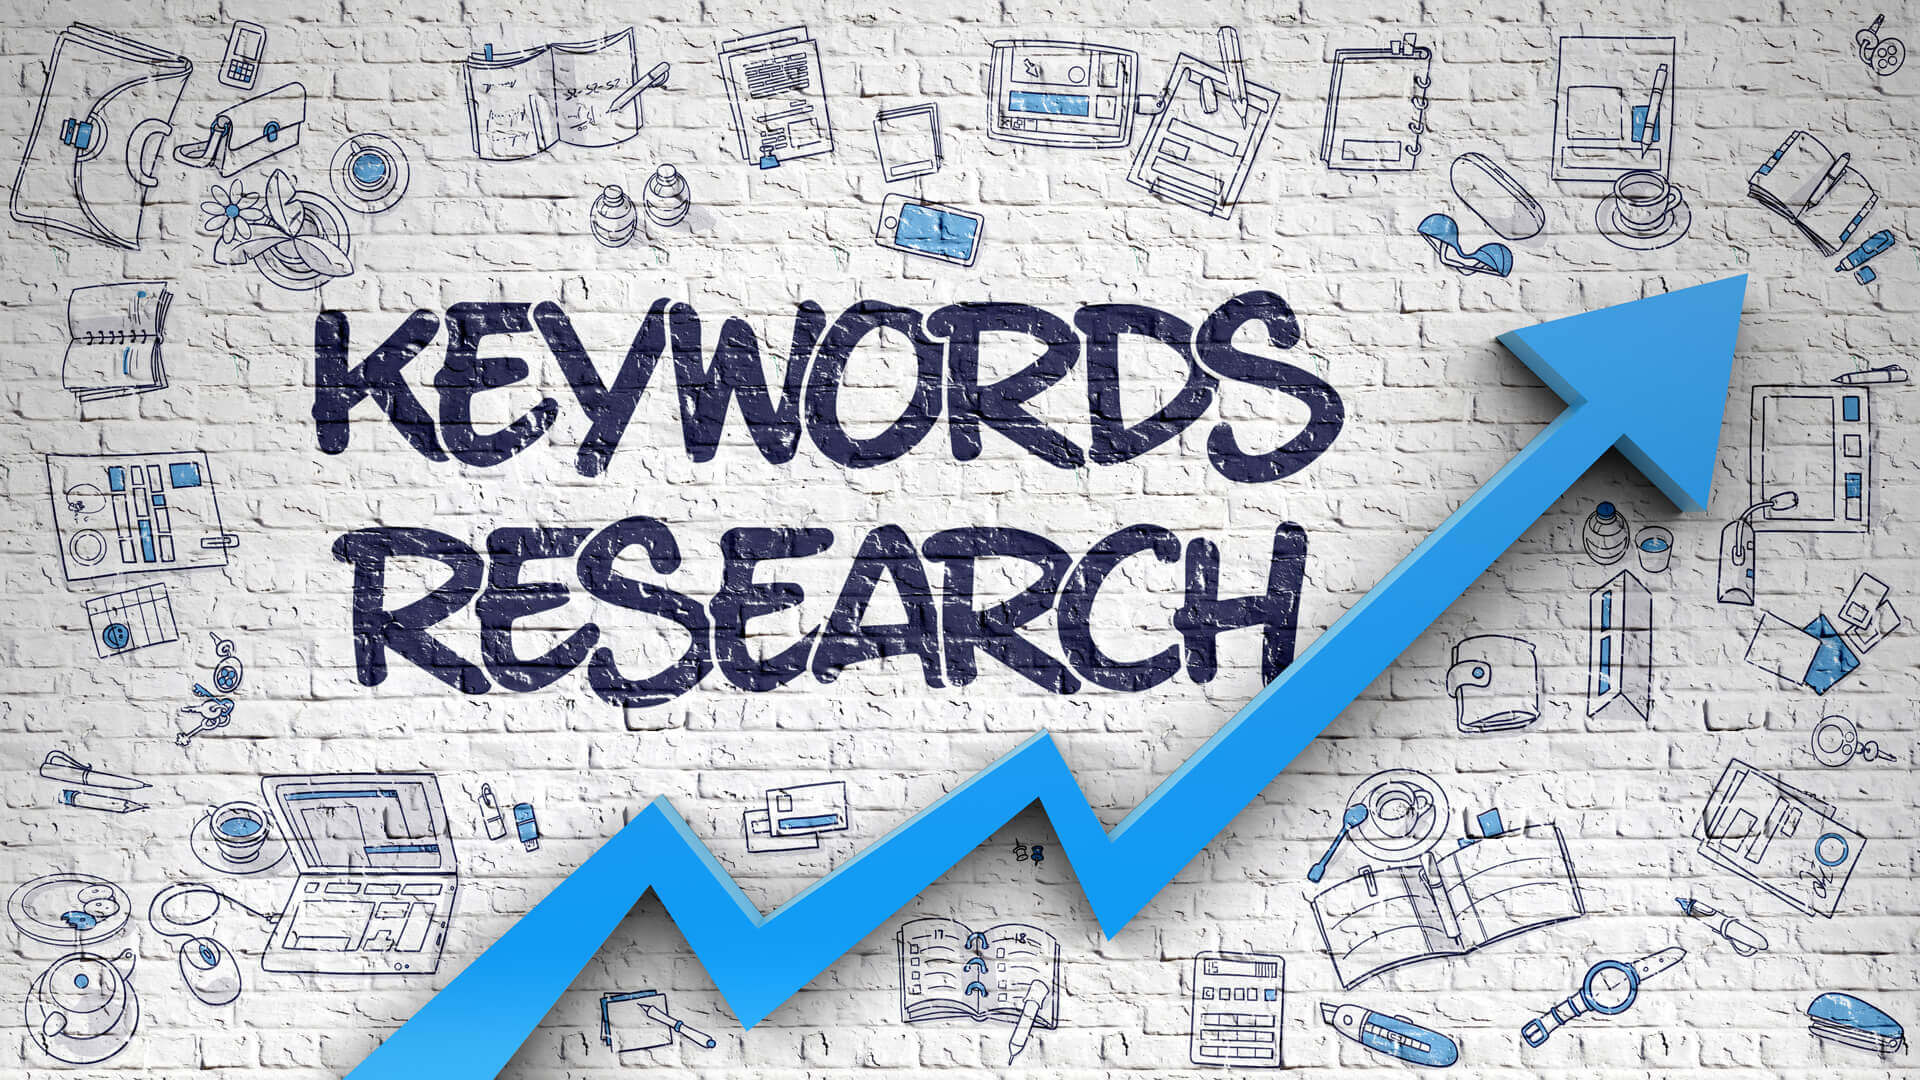 Marketing Keyword Research